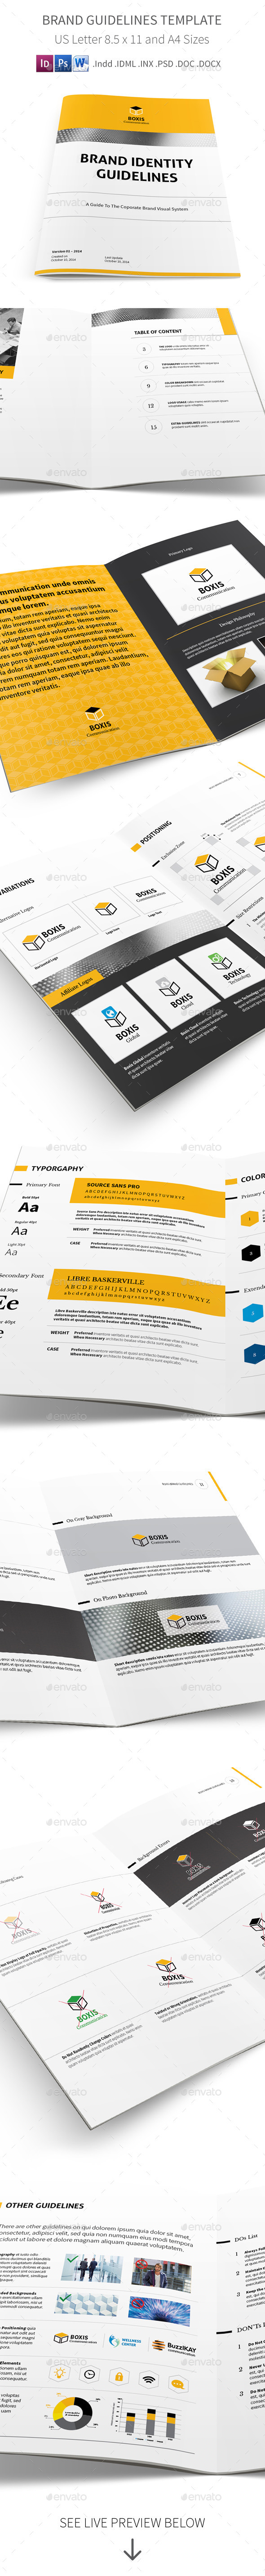 Brand Identity Guidelines Template - Informational Brochures